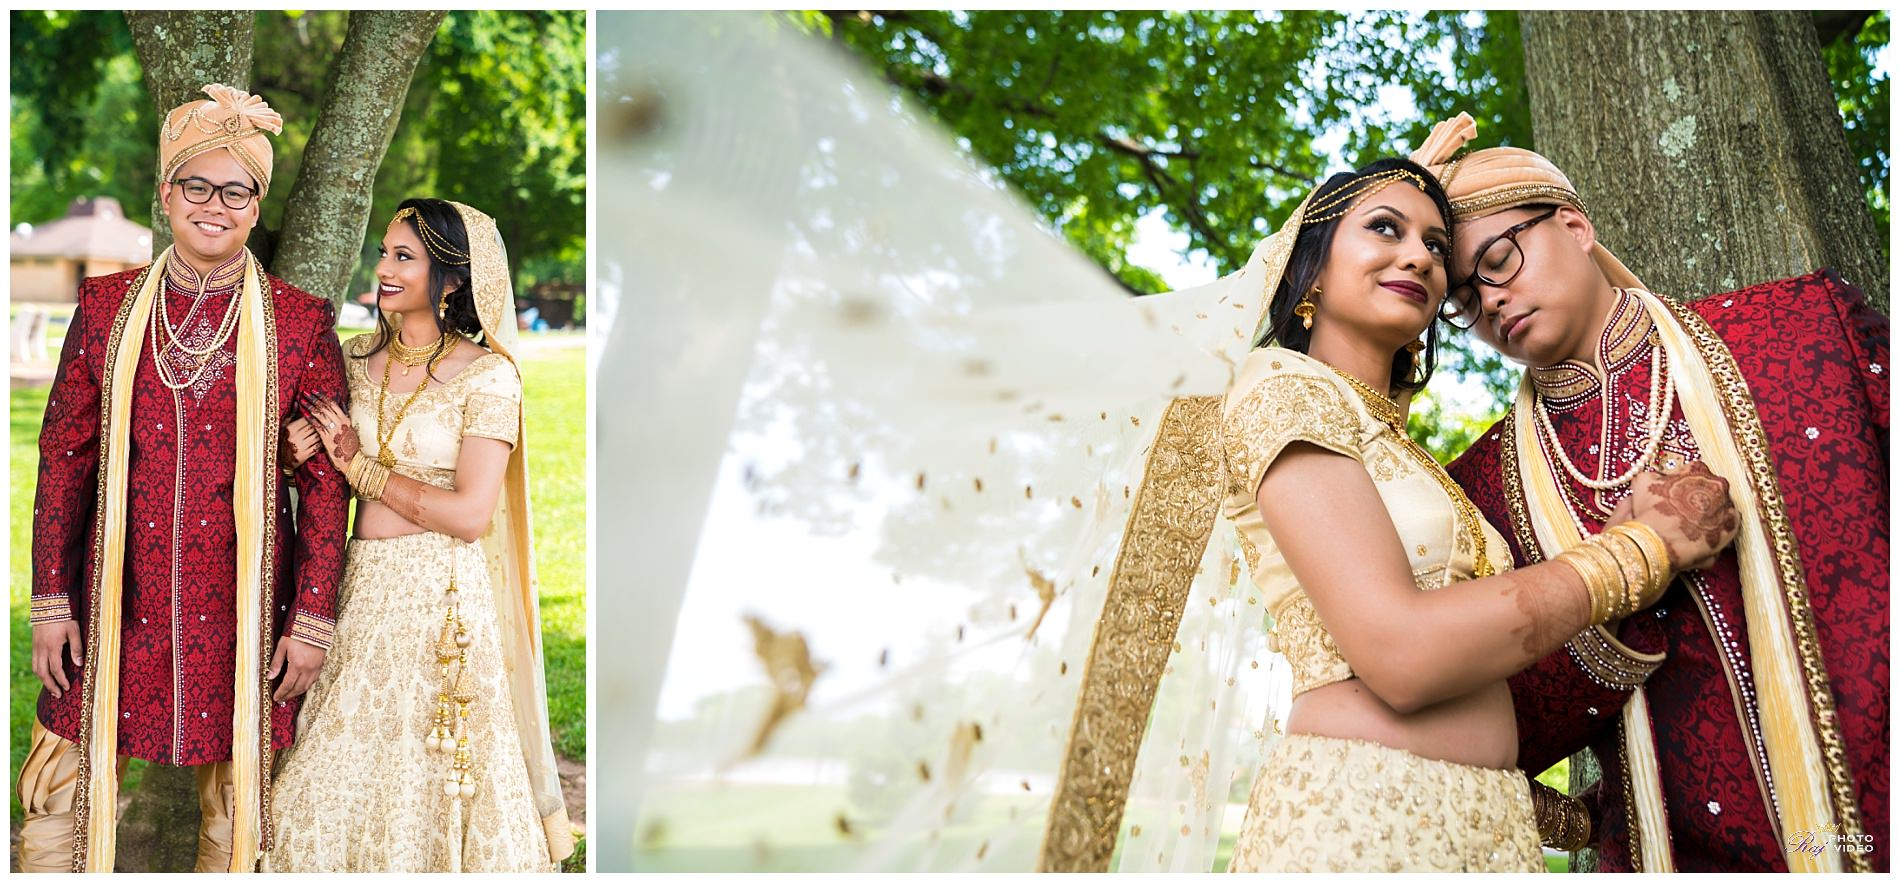 Roosevelt-Park-Bride-Groom-Portrait-Shoot-Khusbu-Jeff-15.jpg